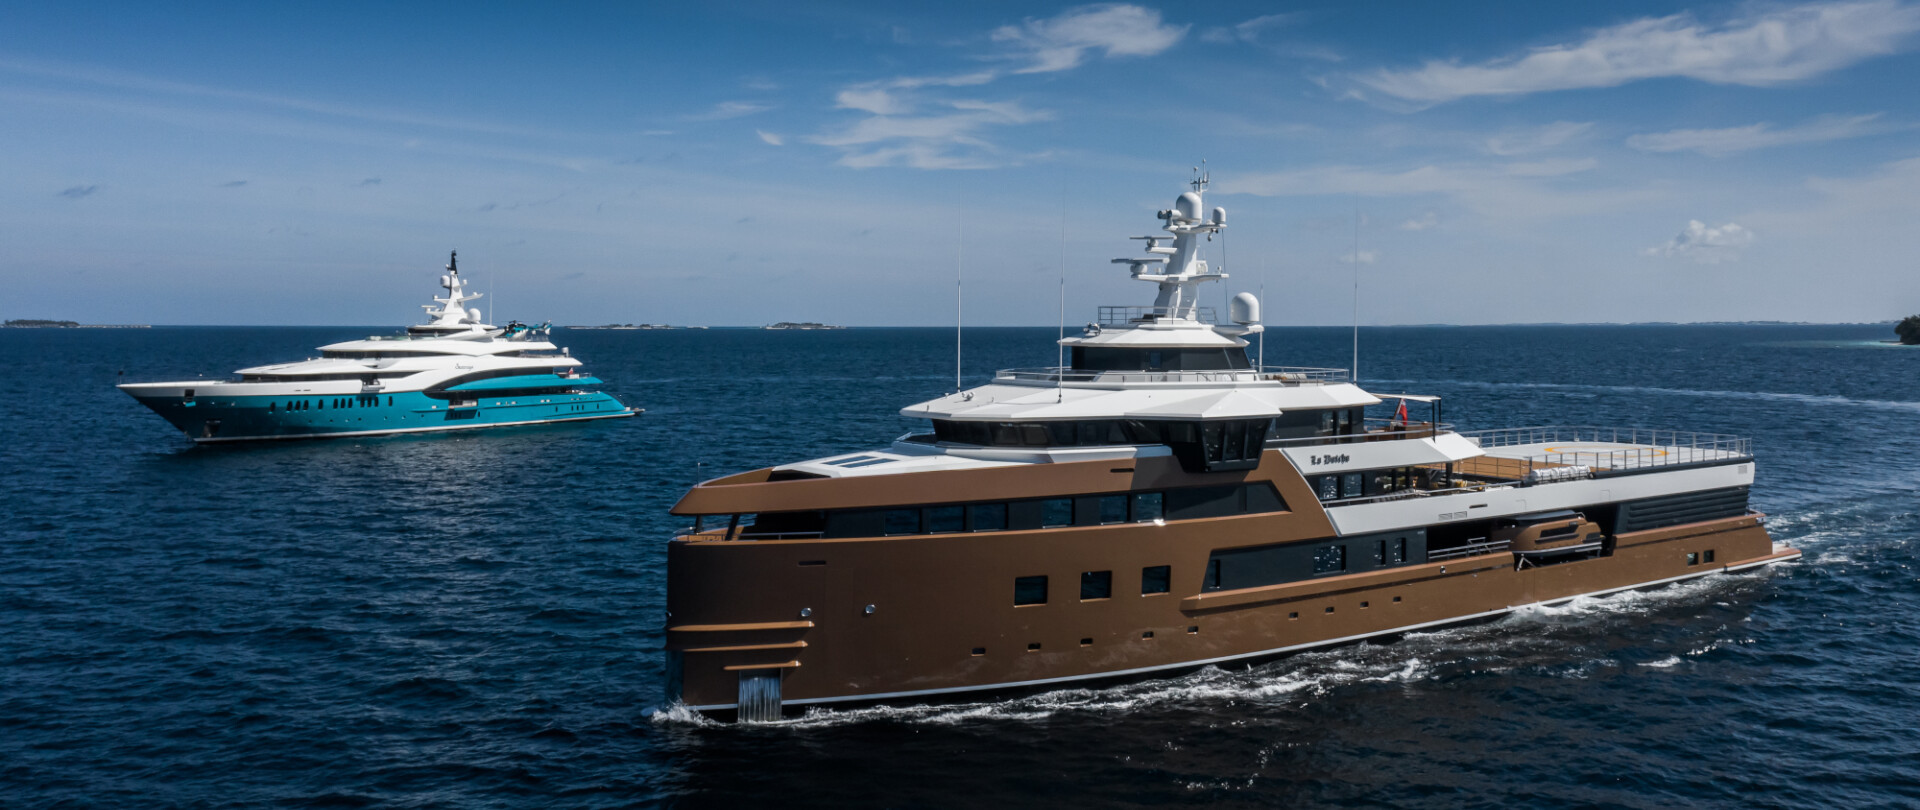 Made in the Netherlands – the best Dutch-built yachts photo 1